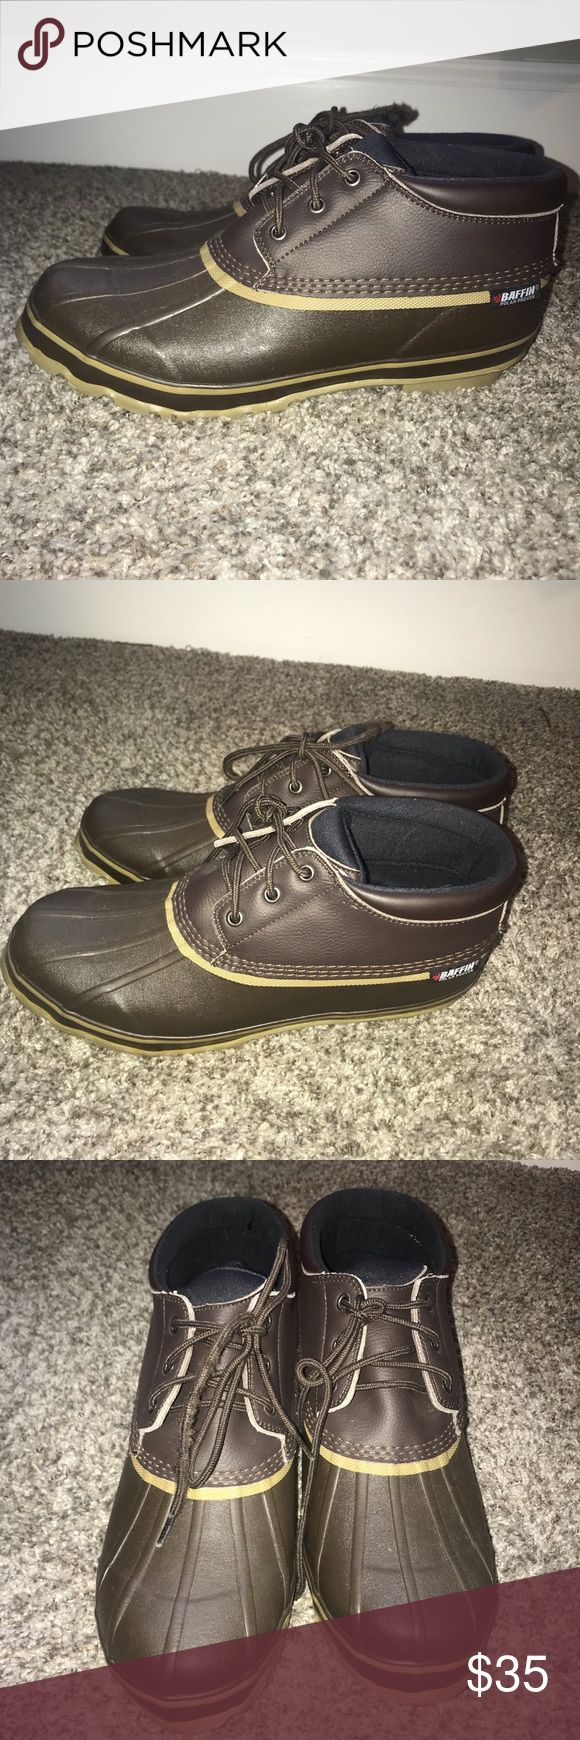 Baffin Boots 13 Low Baffin duck style boots in very good condition. Perfect for …